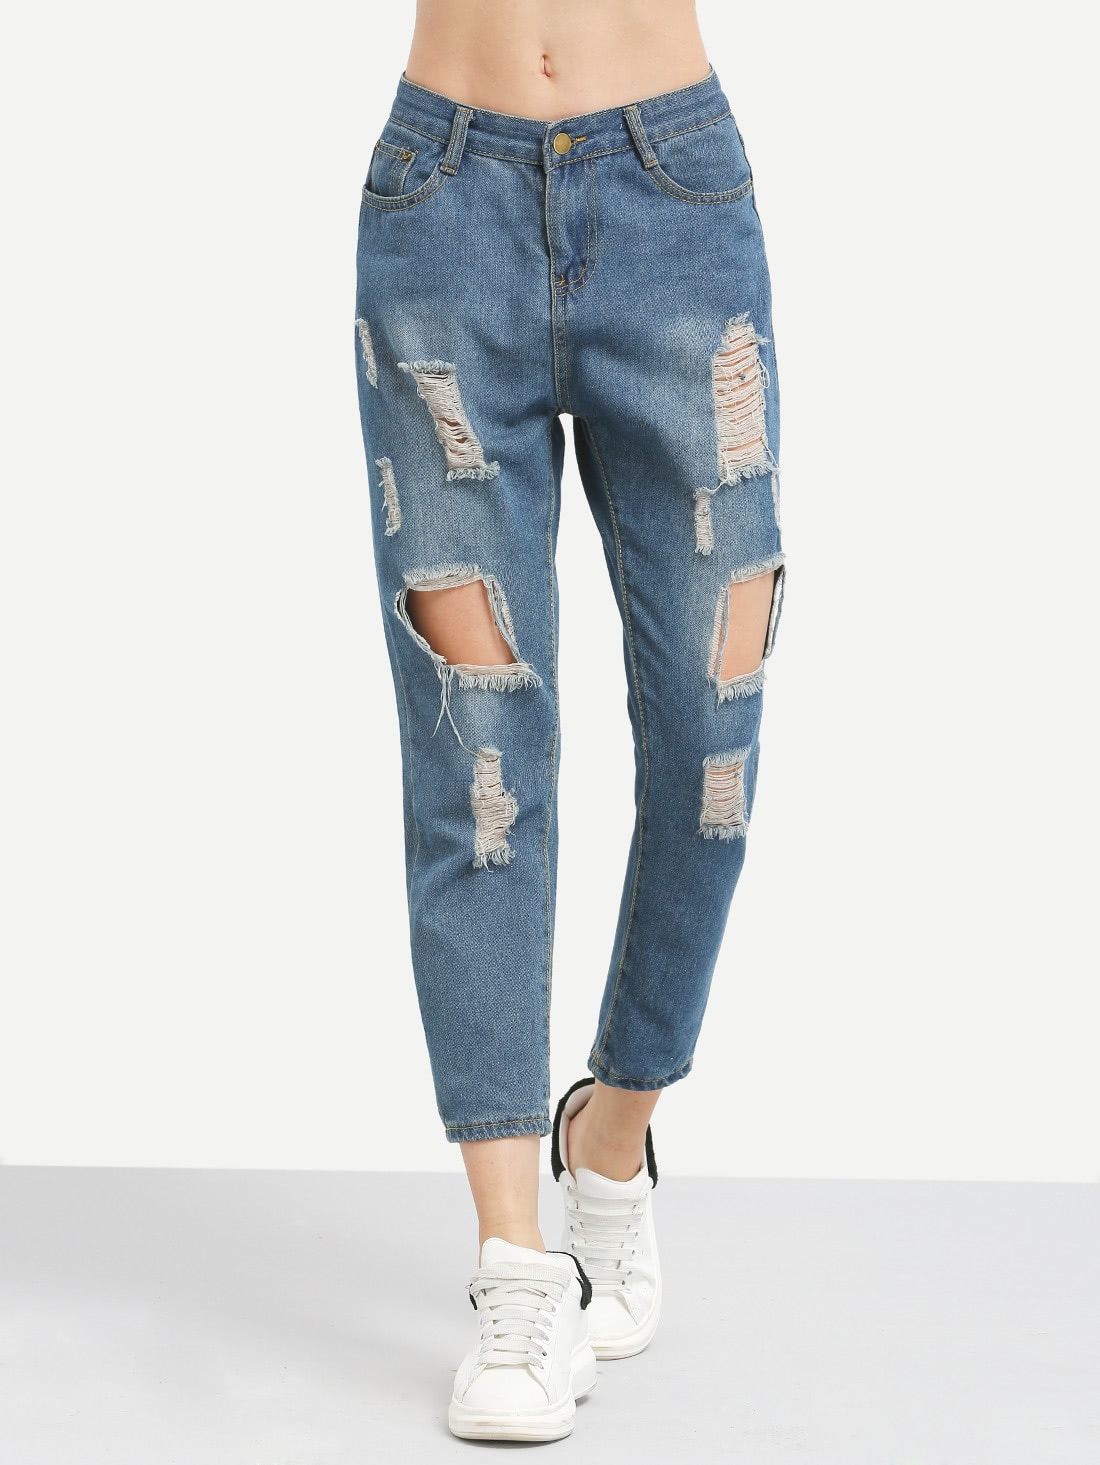 Distressed Boyfriend Ankle JeansDistressed Boyfriend Ankle Jeans<br><br>color: Blue<br>size: L,M,S,XL,XXL